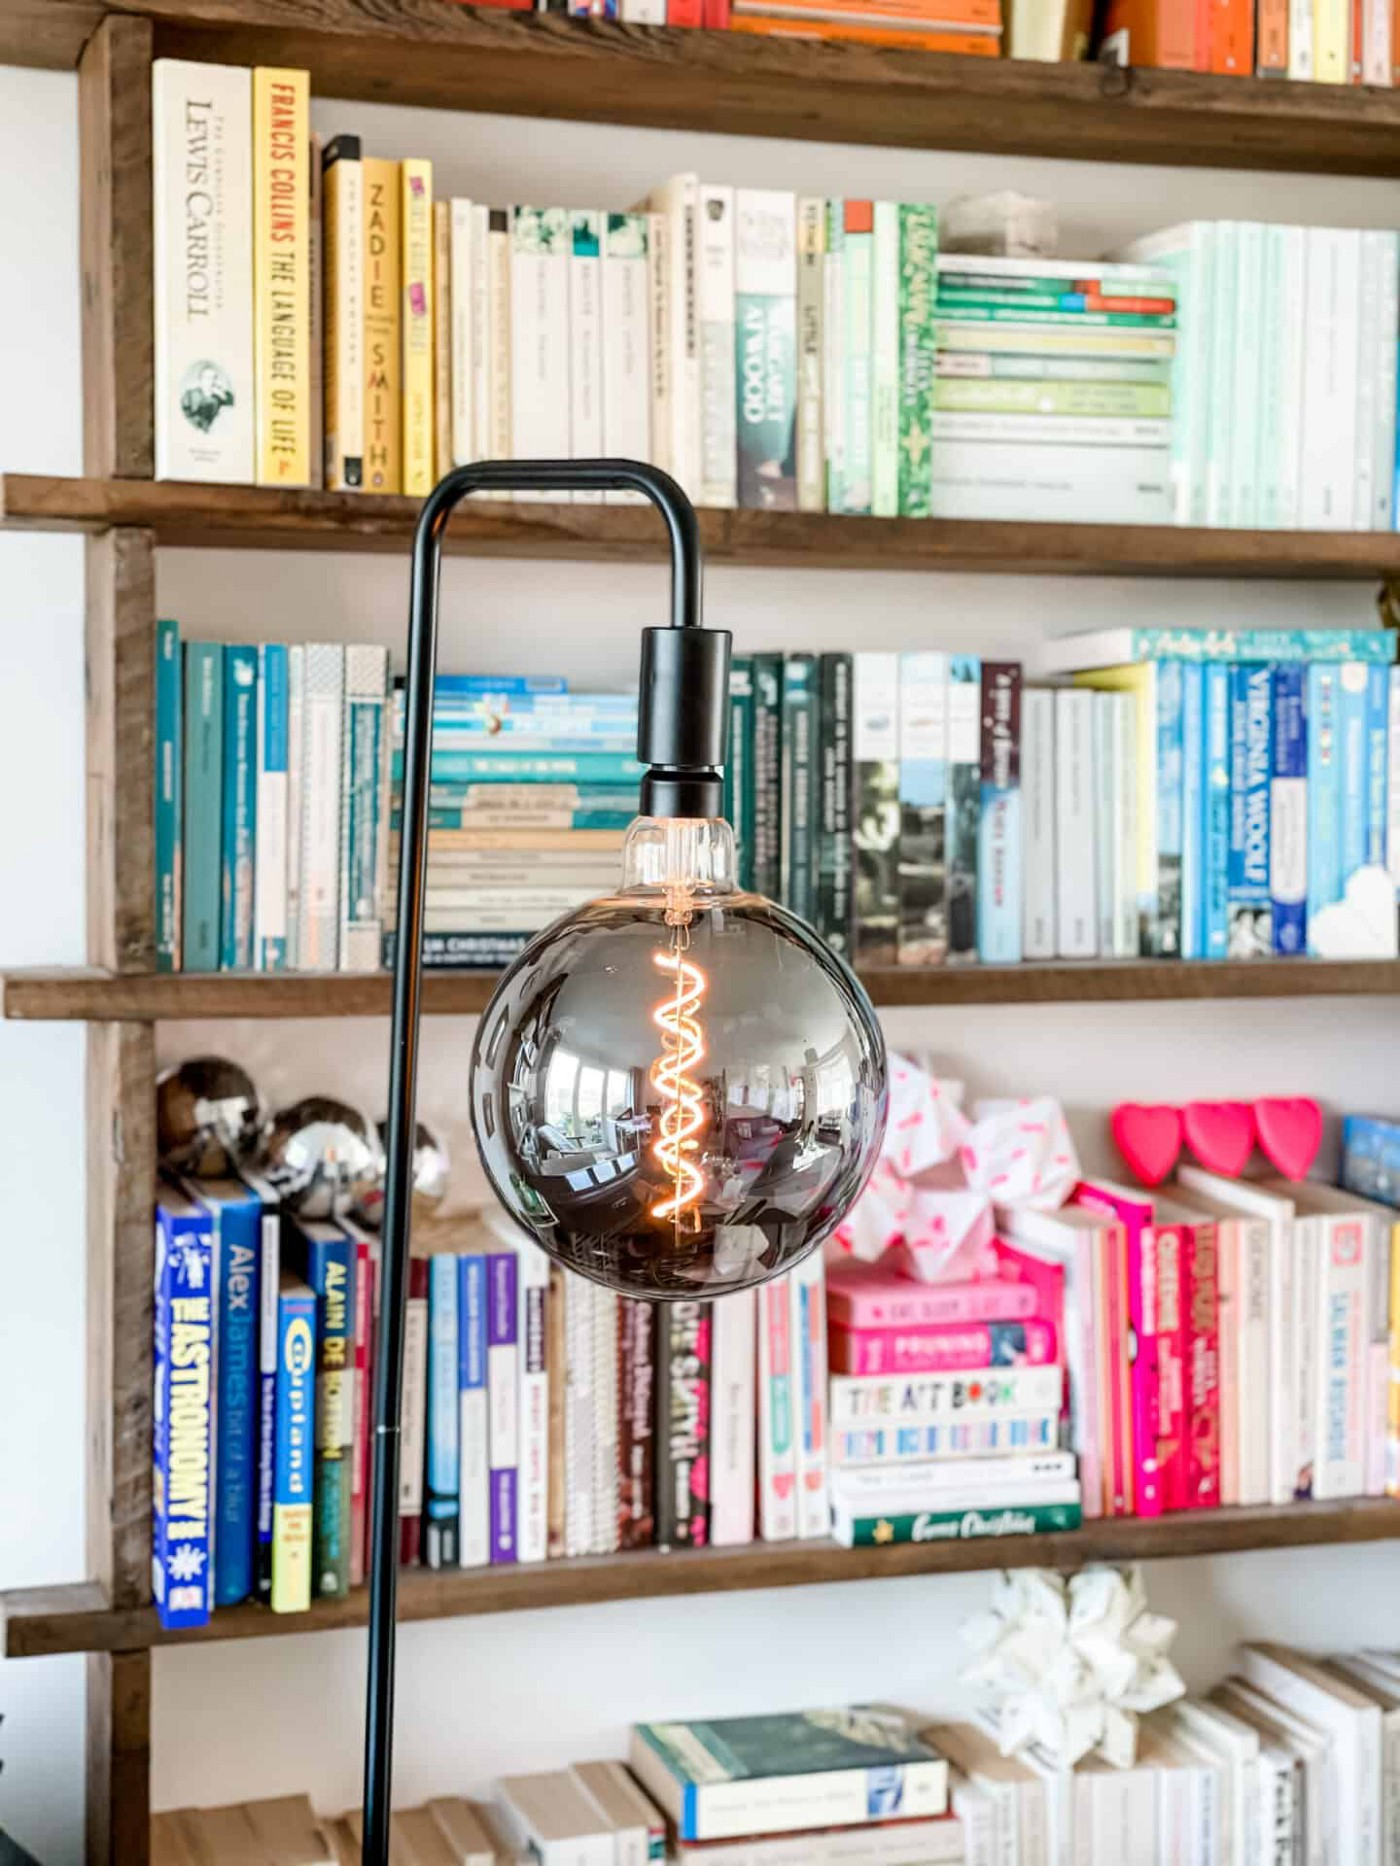 Giant LED bulb in a black industrial floor lamp in front of colour coded bookshelves